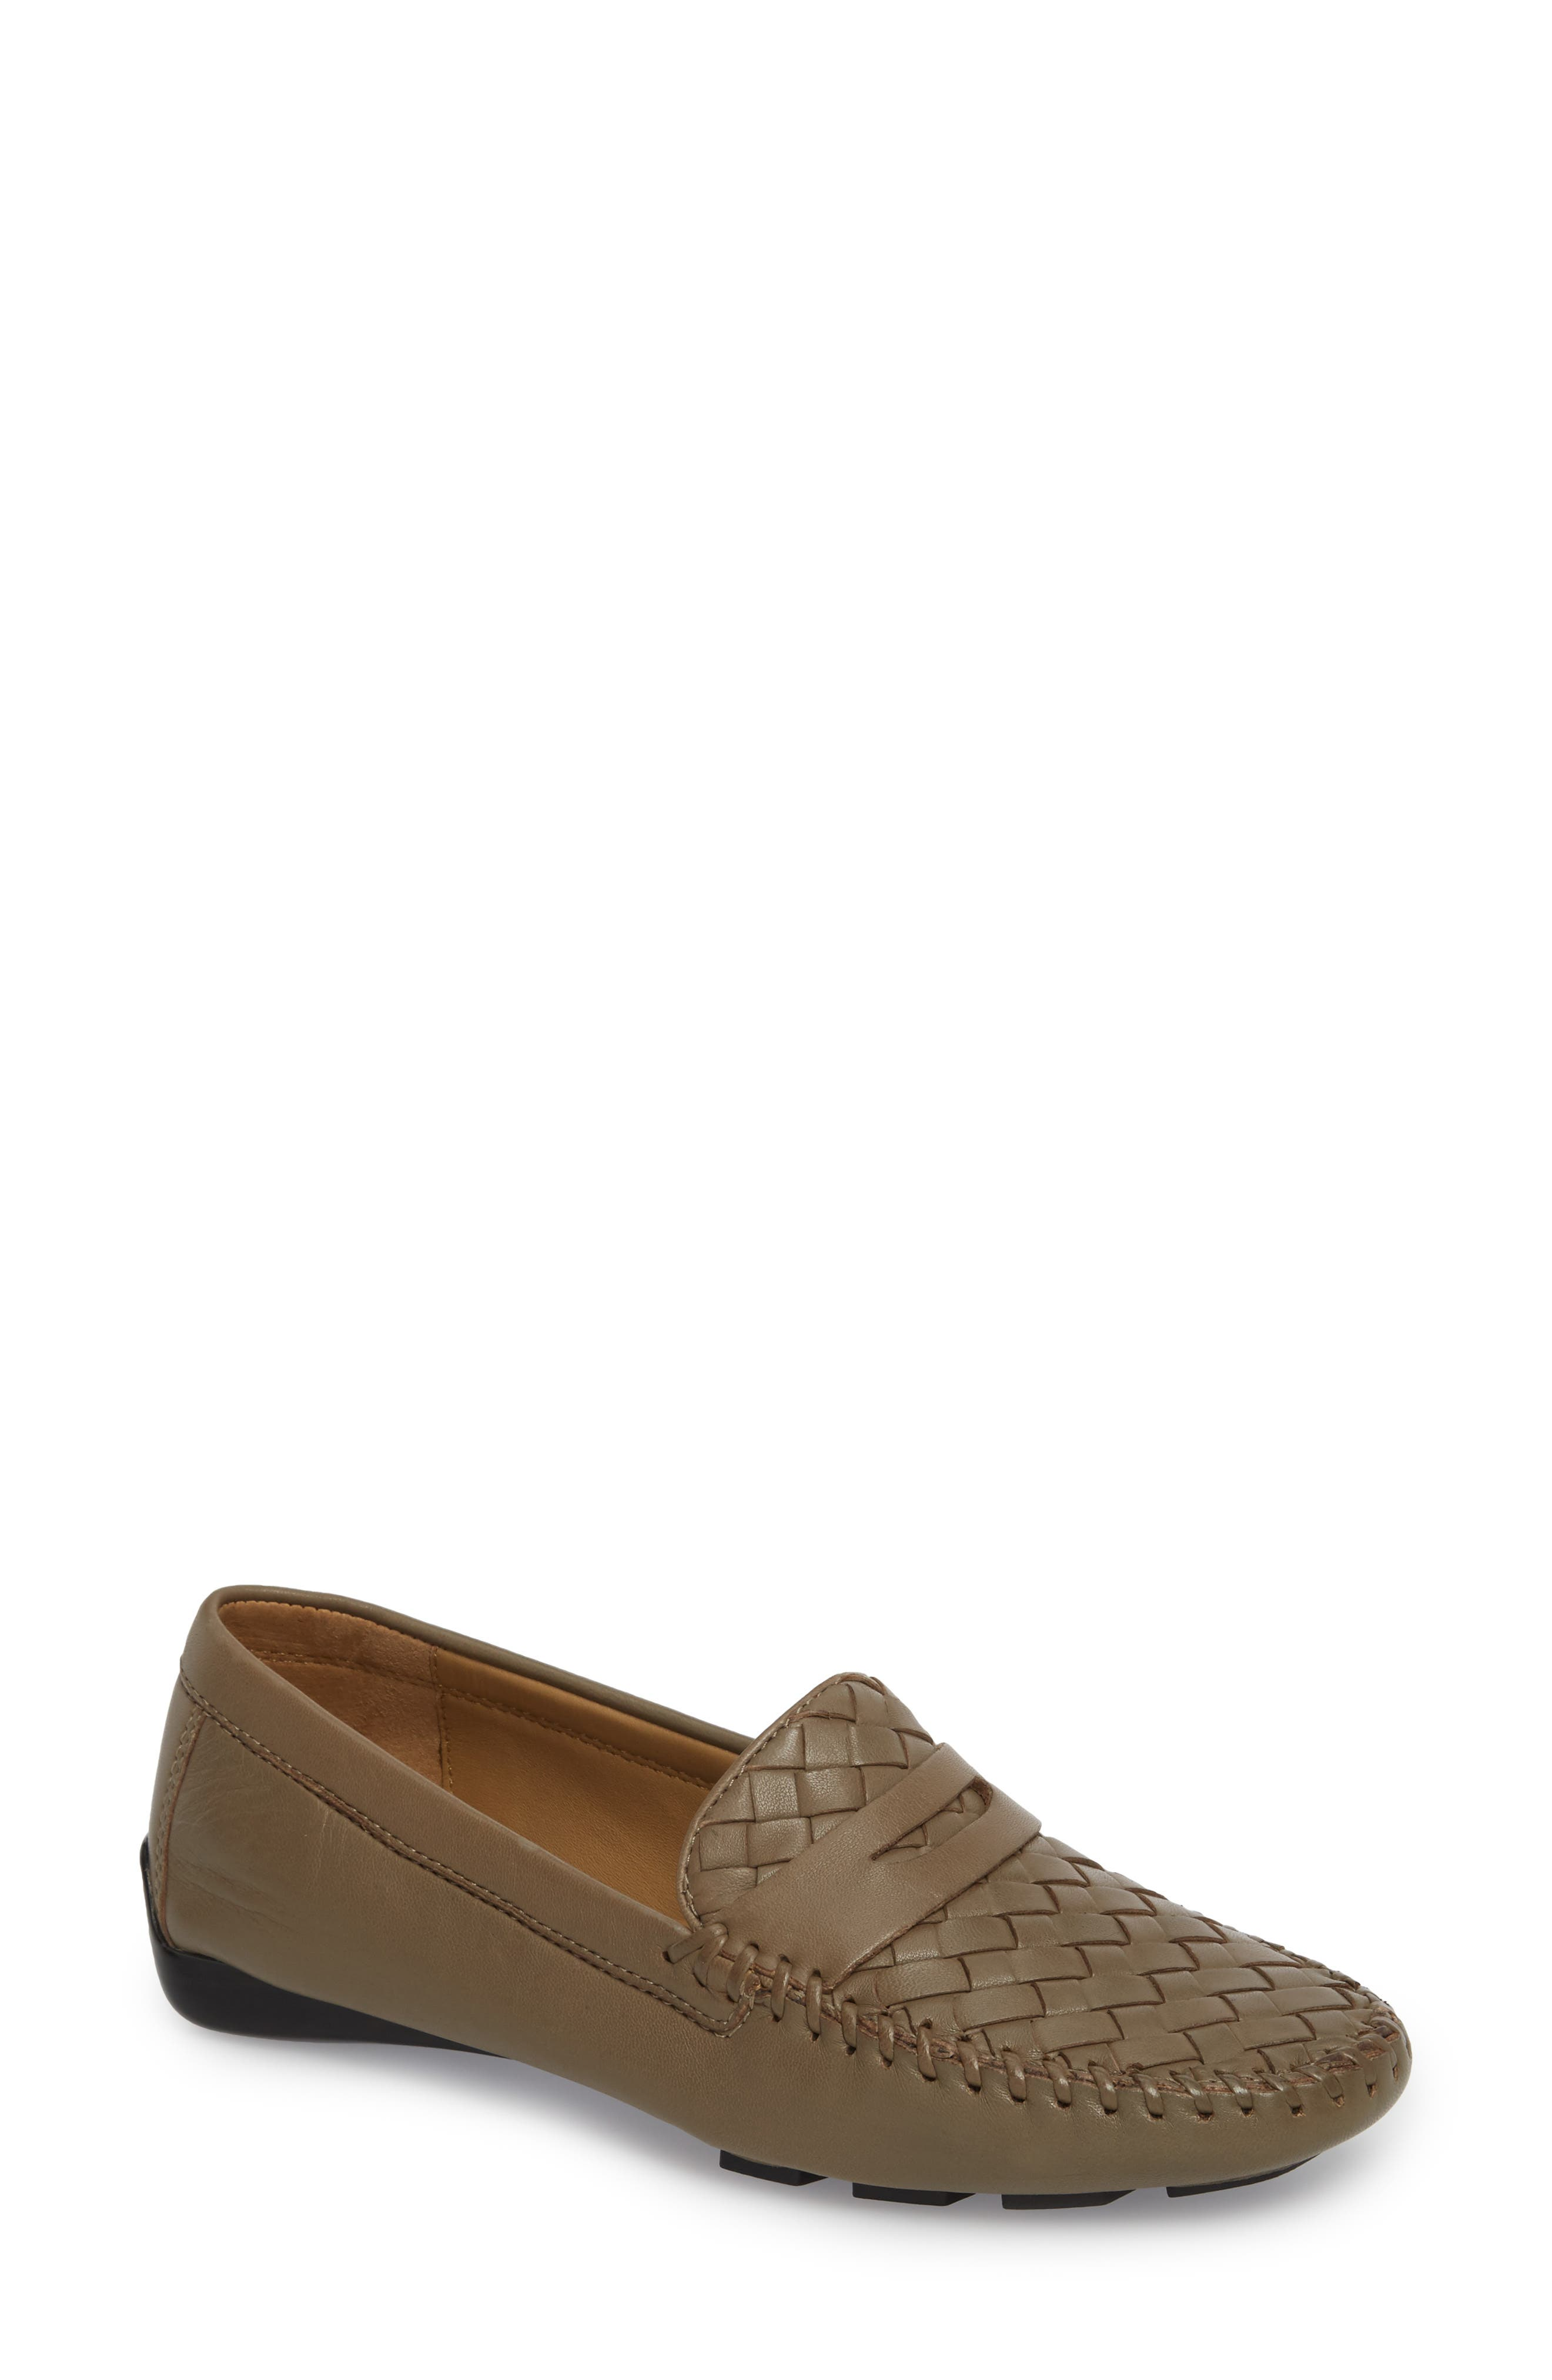 'Petra' Driving Shoe,                         Main,                         color, UMBER LEATHER